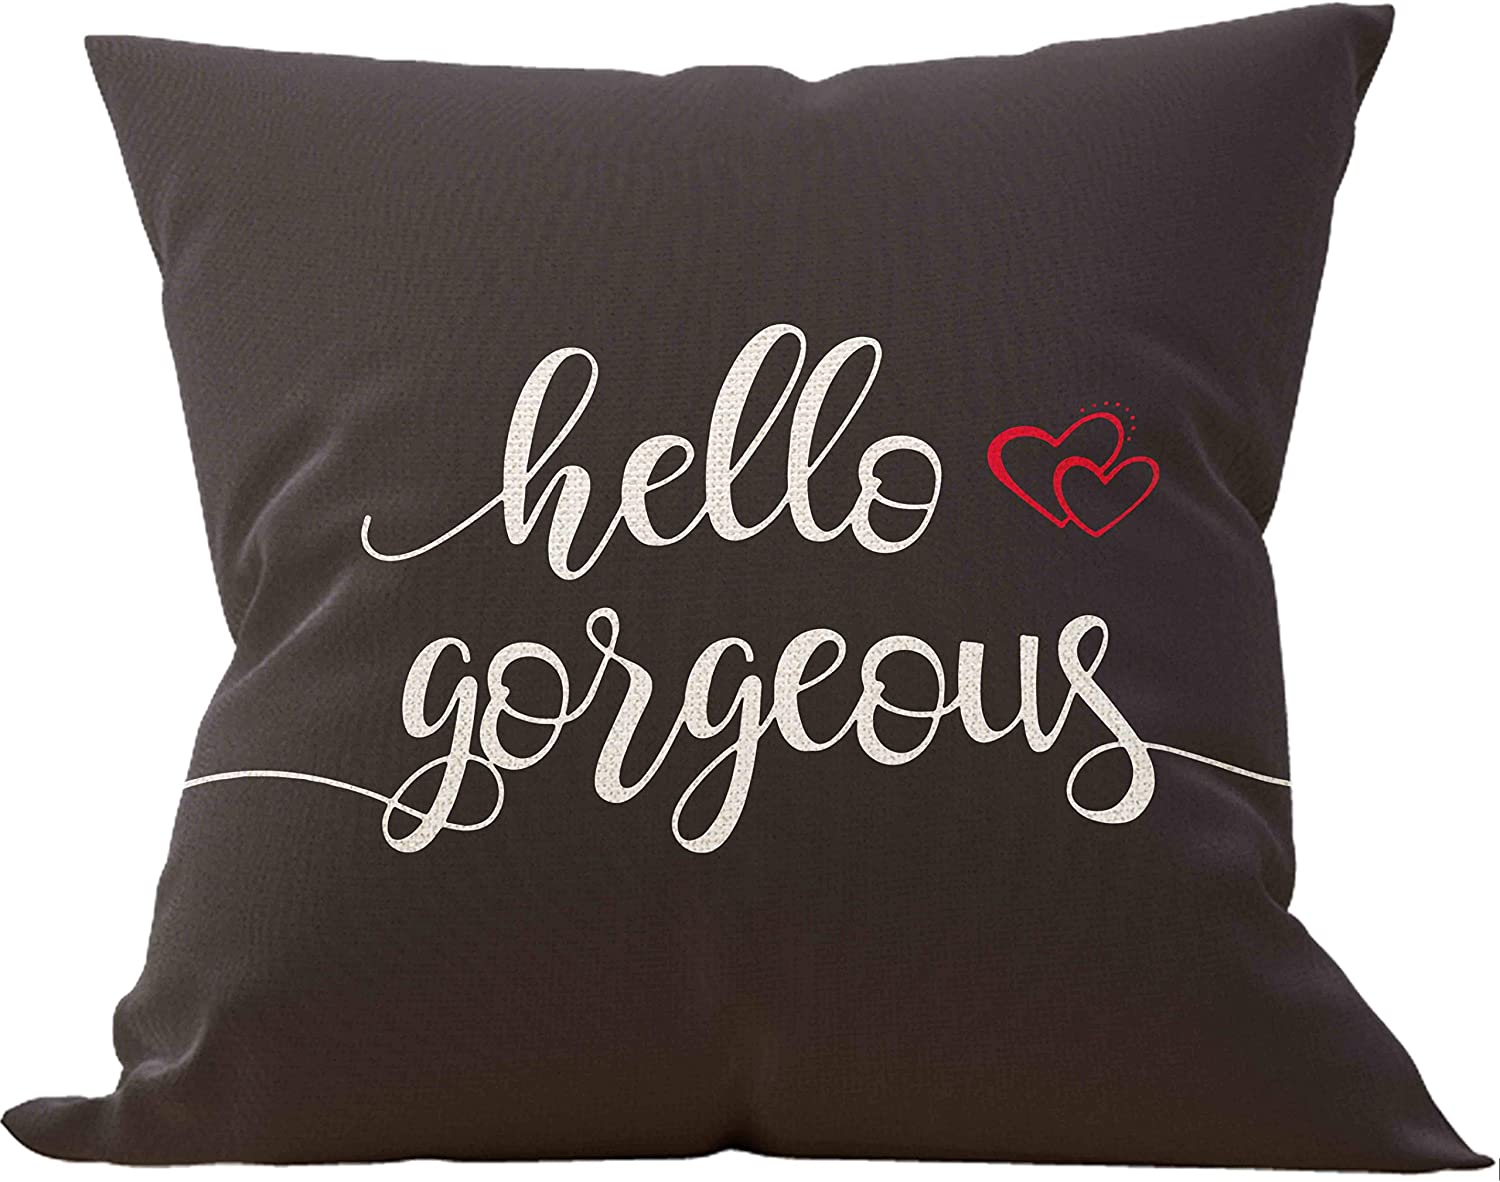 Mancheng-zi Hello Gorgeous Throw Pillow Case, Gift to Black Girls, African American Girl Gift, 18 x 18 Inch Decorative Cotton Linen Cushion Cover for Sofa Couch Bed